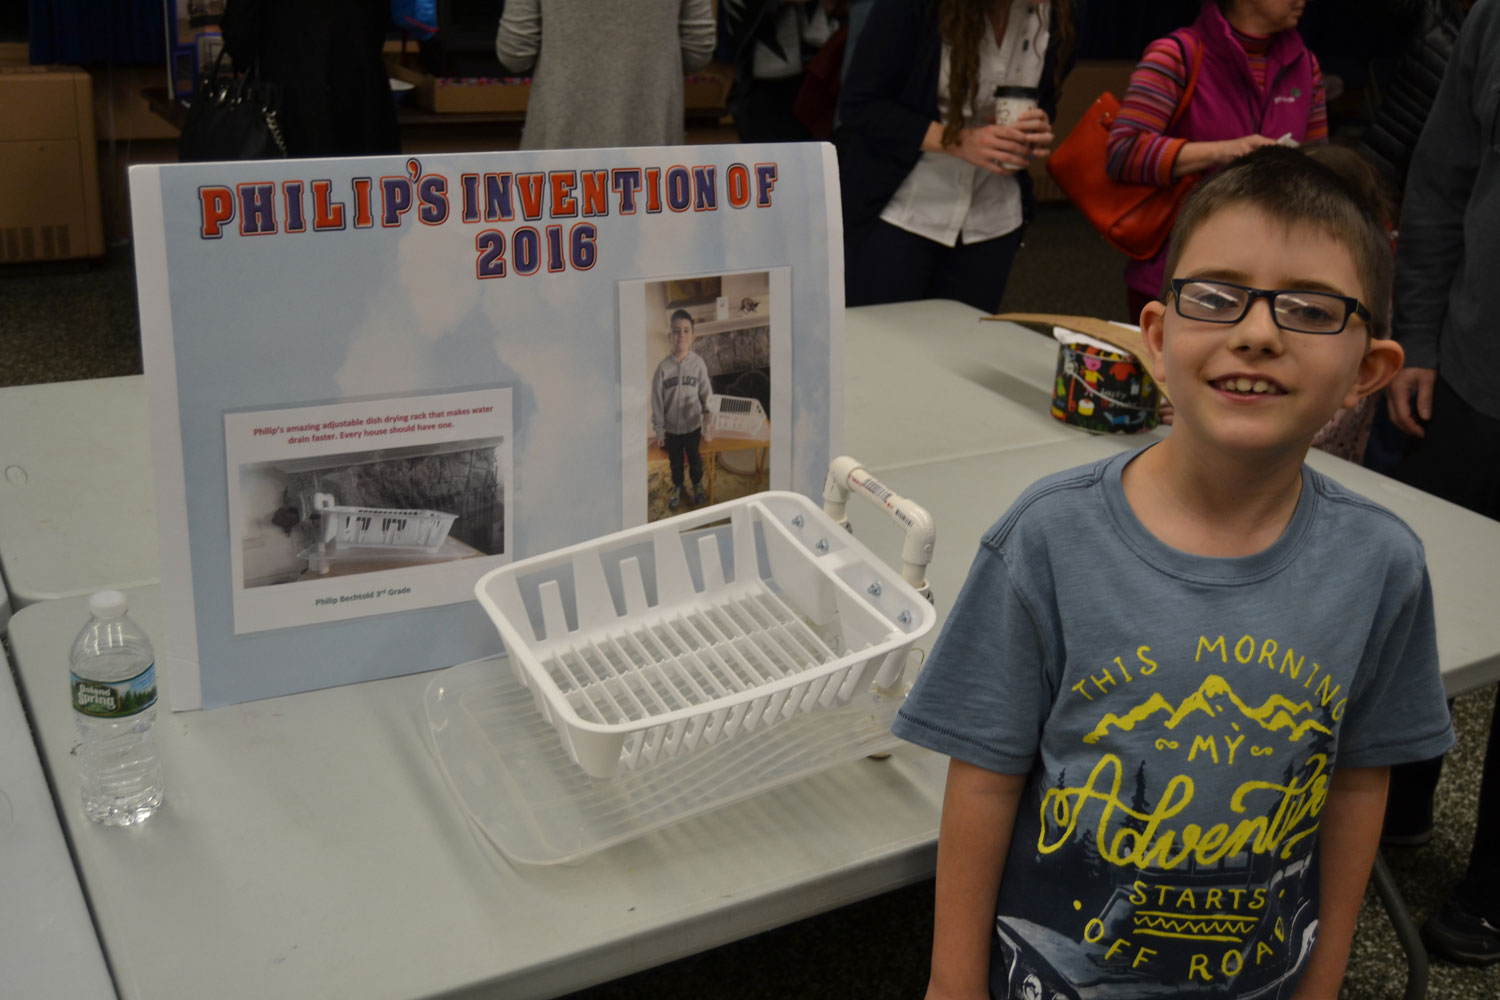 invention convention full of fresh ideas from young minds - tbr news